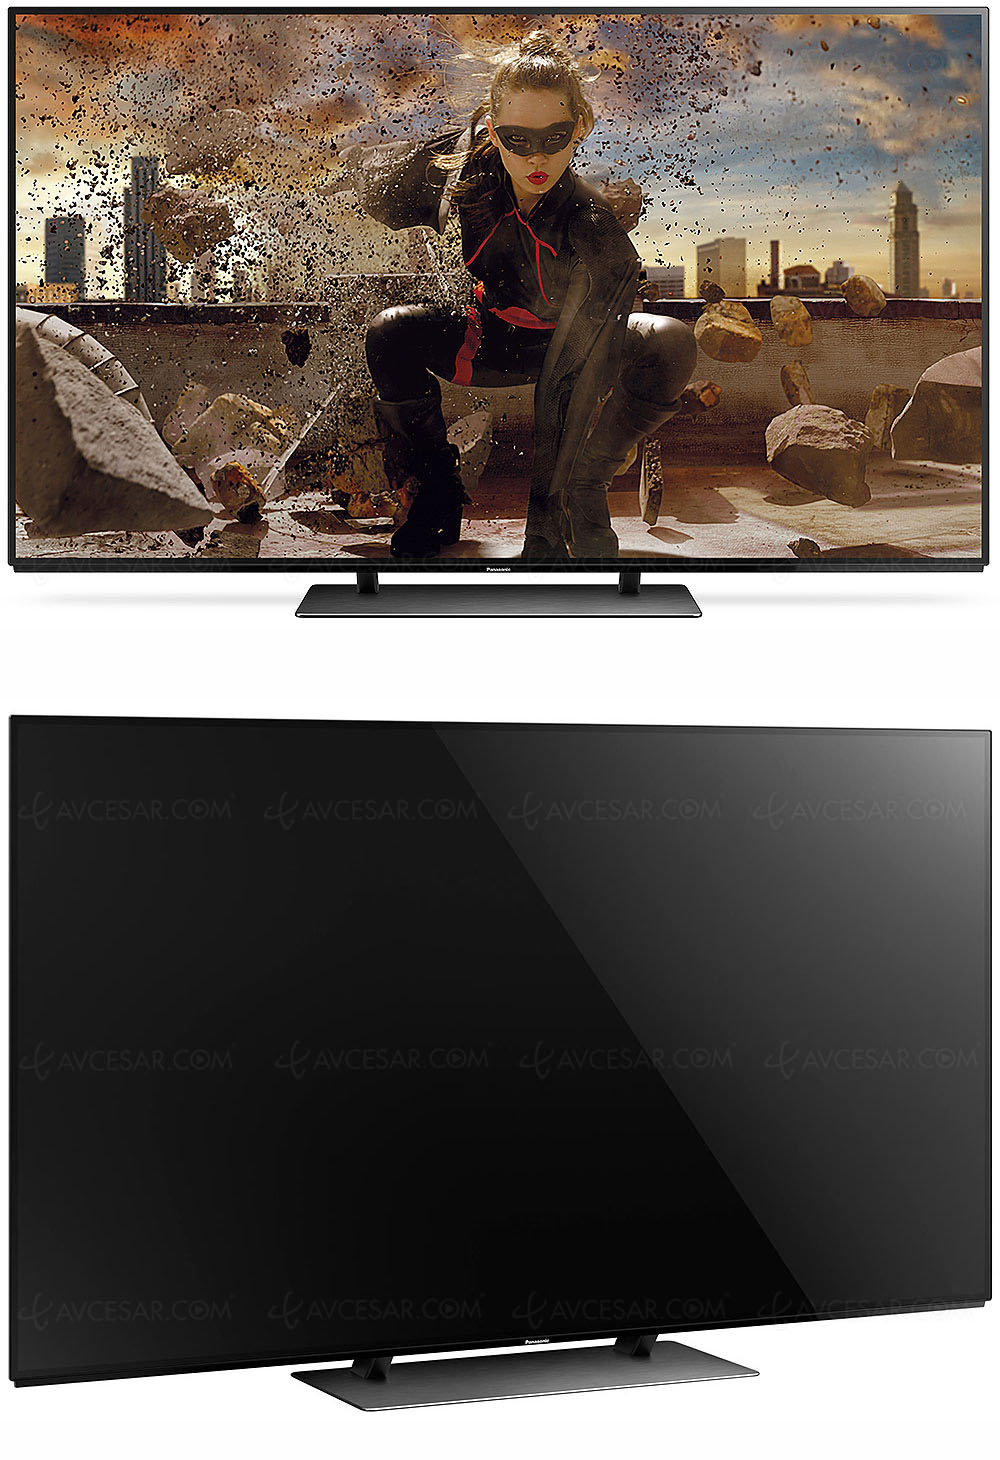 Test Tv Cran Plat Panasonic Tx 65ez950 R Sum  # Tv Qui Sort Du Meuble Fabricant